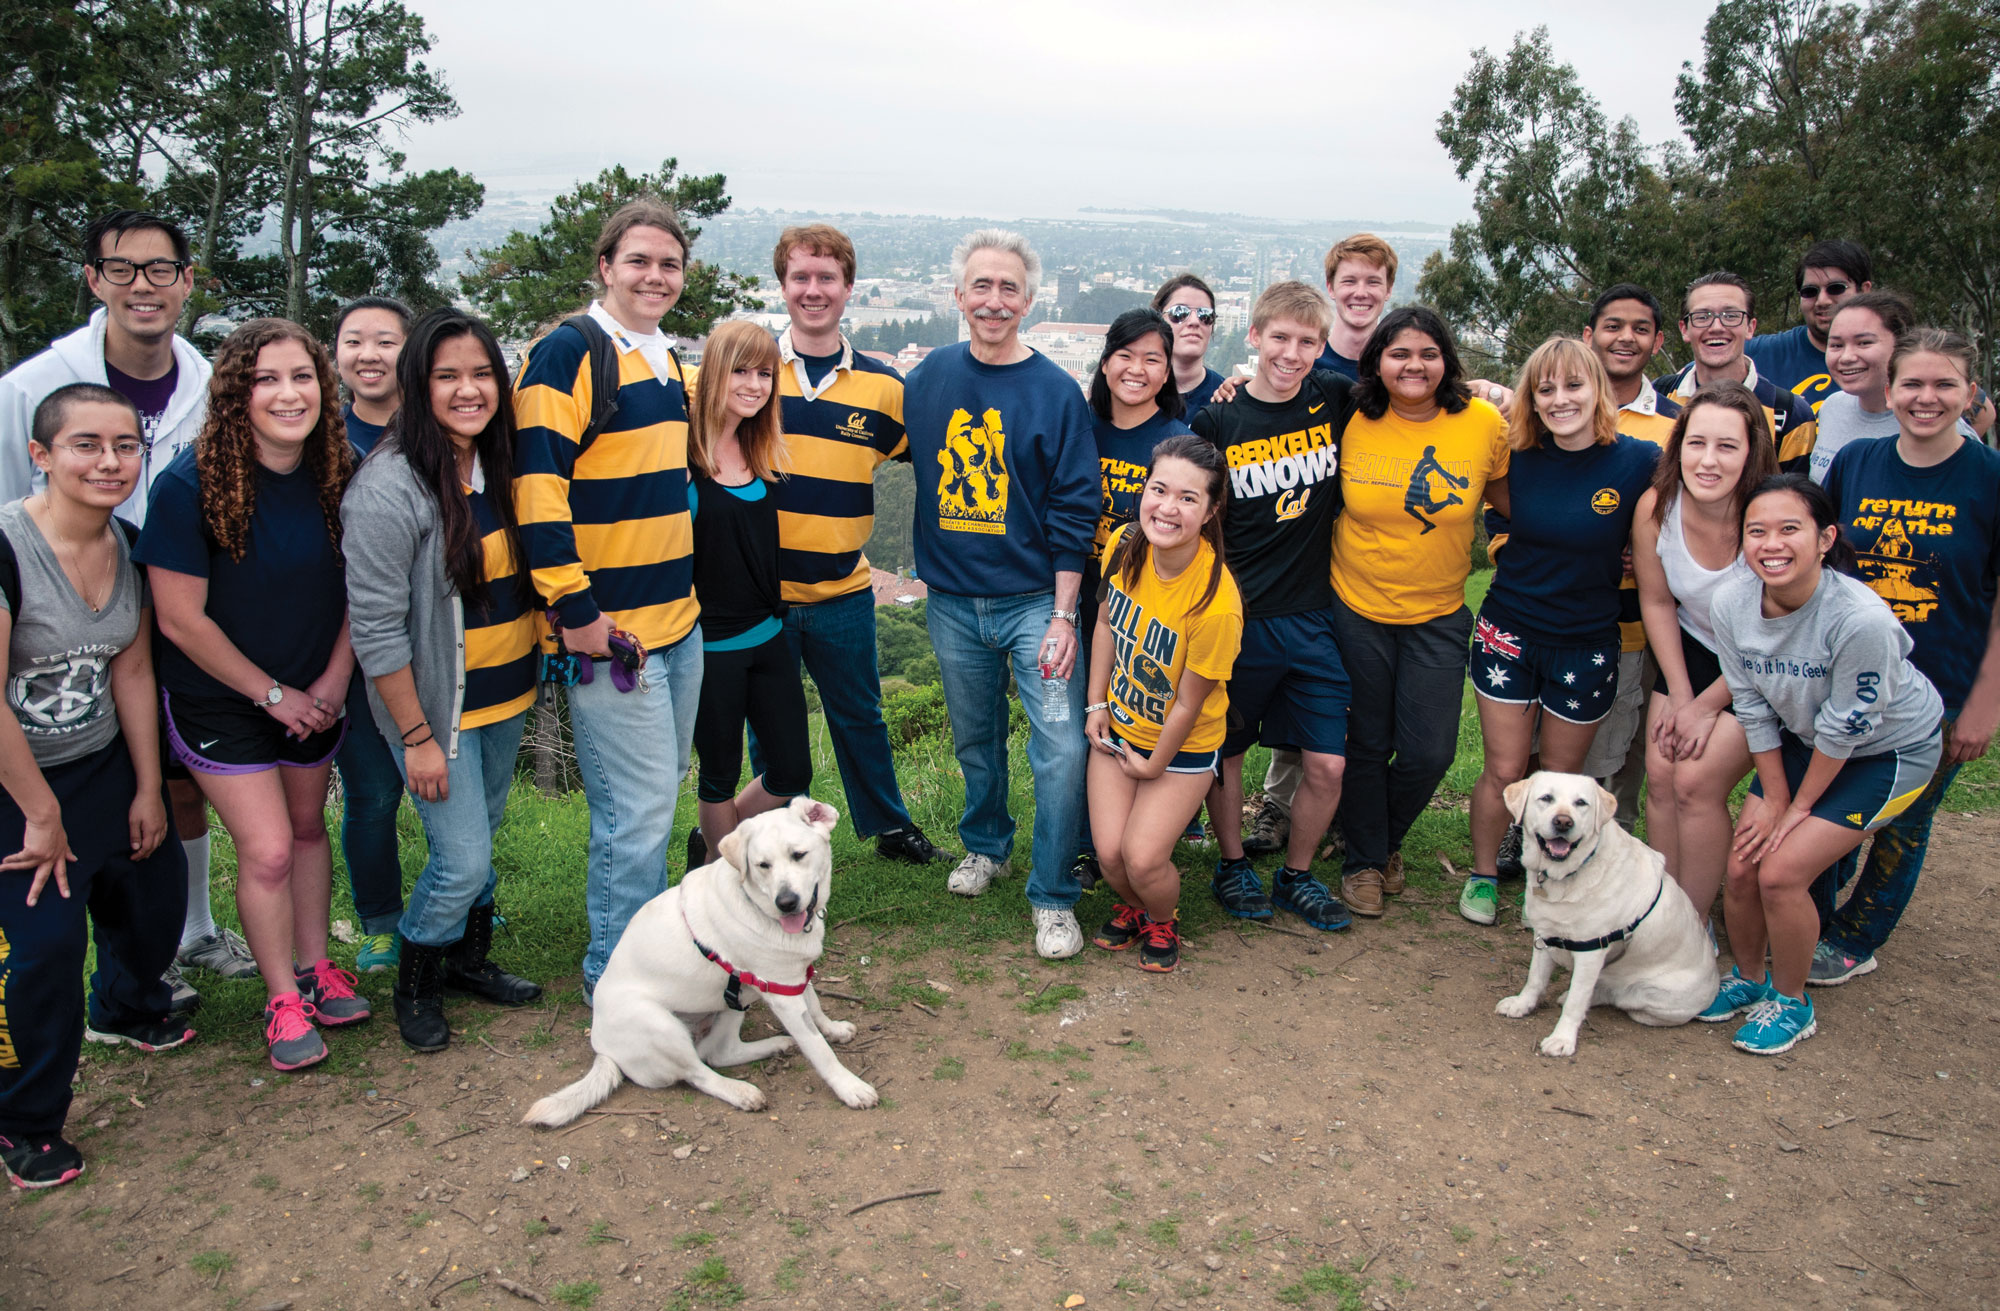 Photo of the chancellor and about 15 students, most wearing blue and gold attire, with a foggy city in the backgound.